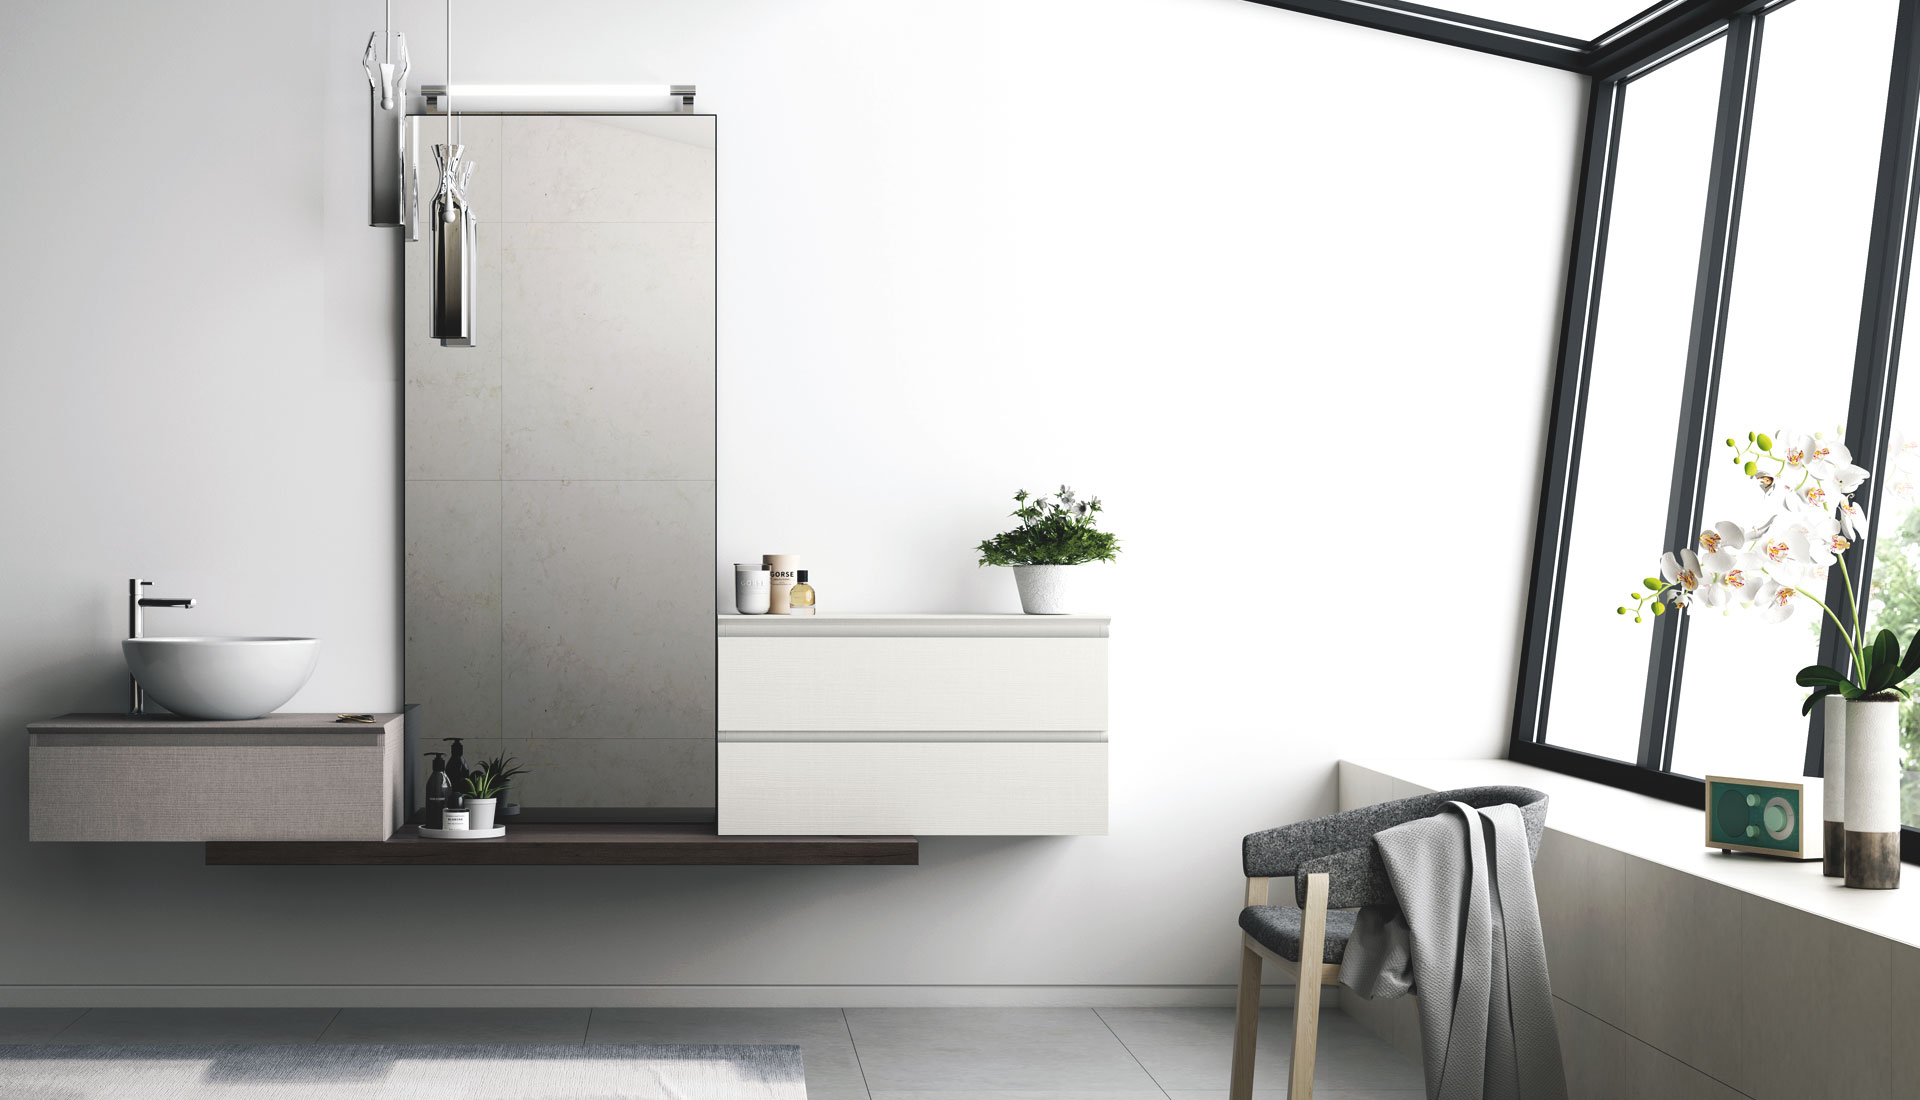 Creative Taking The Lead Spot This Season, Mereway Bathrooms Are Delighted With The Success Of Segreto Handleless Design From Their Collection  Its Easy To See Why Mereway Bathrooms Furniture Is A Must Have For Any Retailer